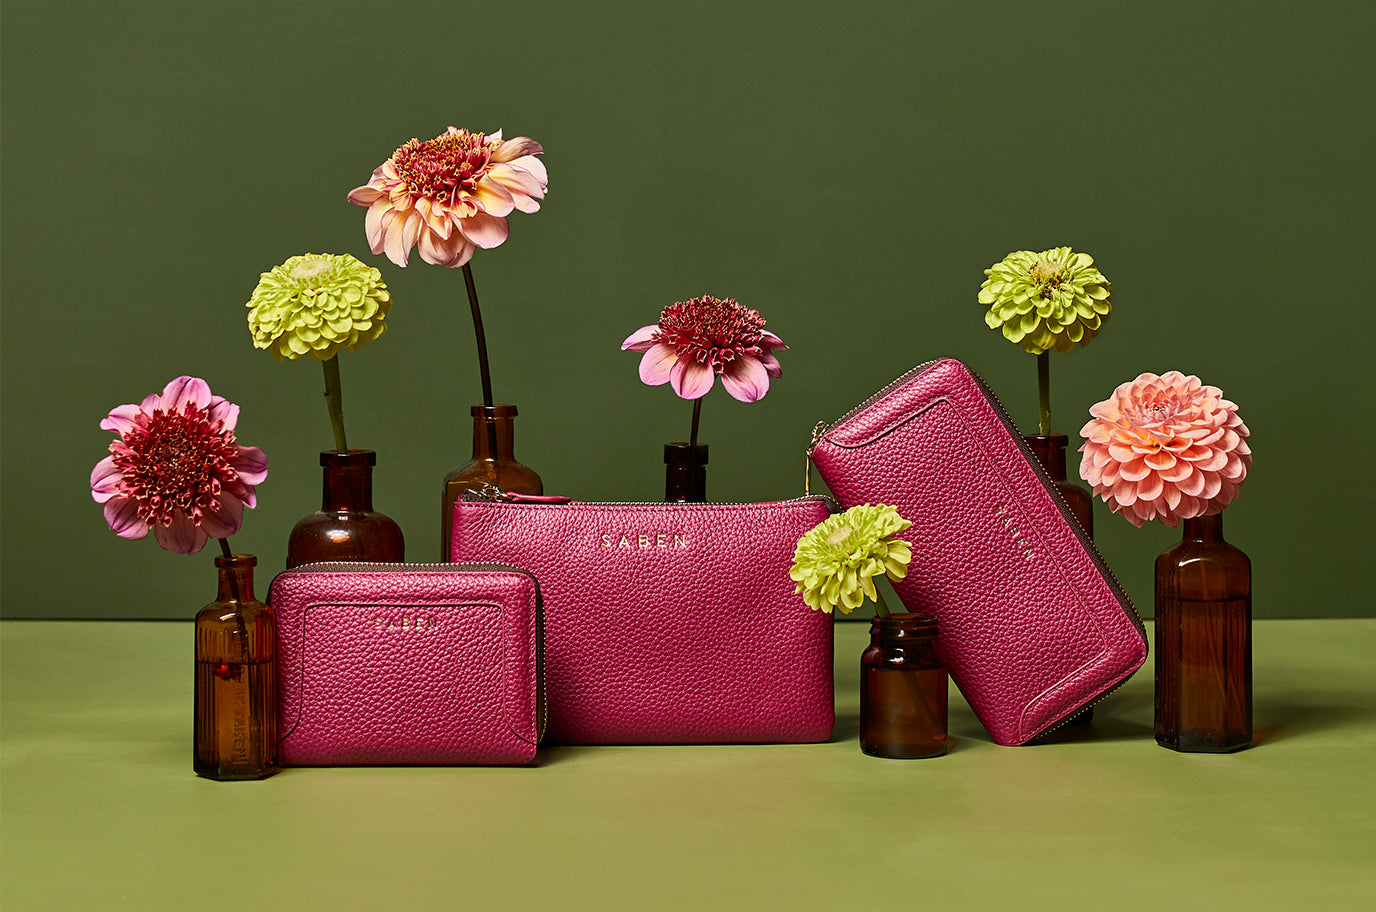 new saben orchid pink leather wallets and handbags sit on green background